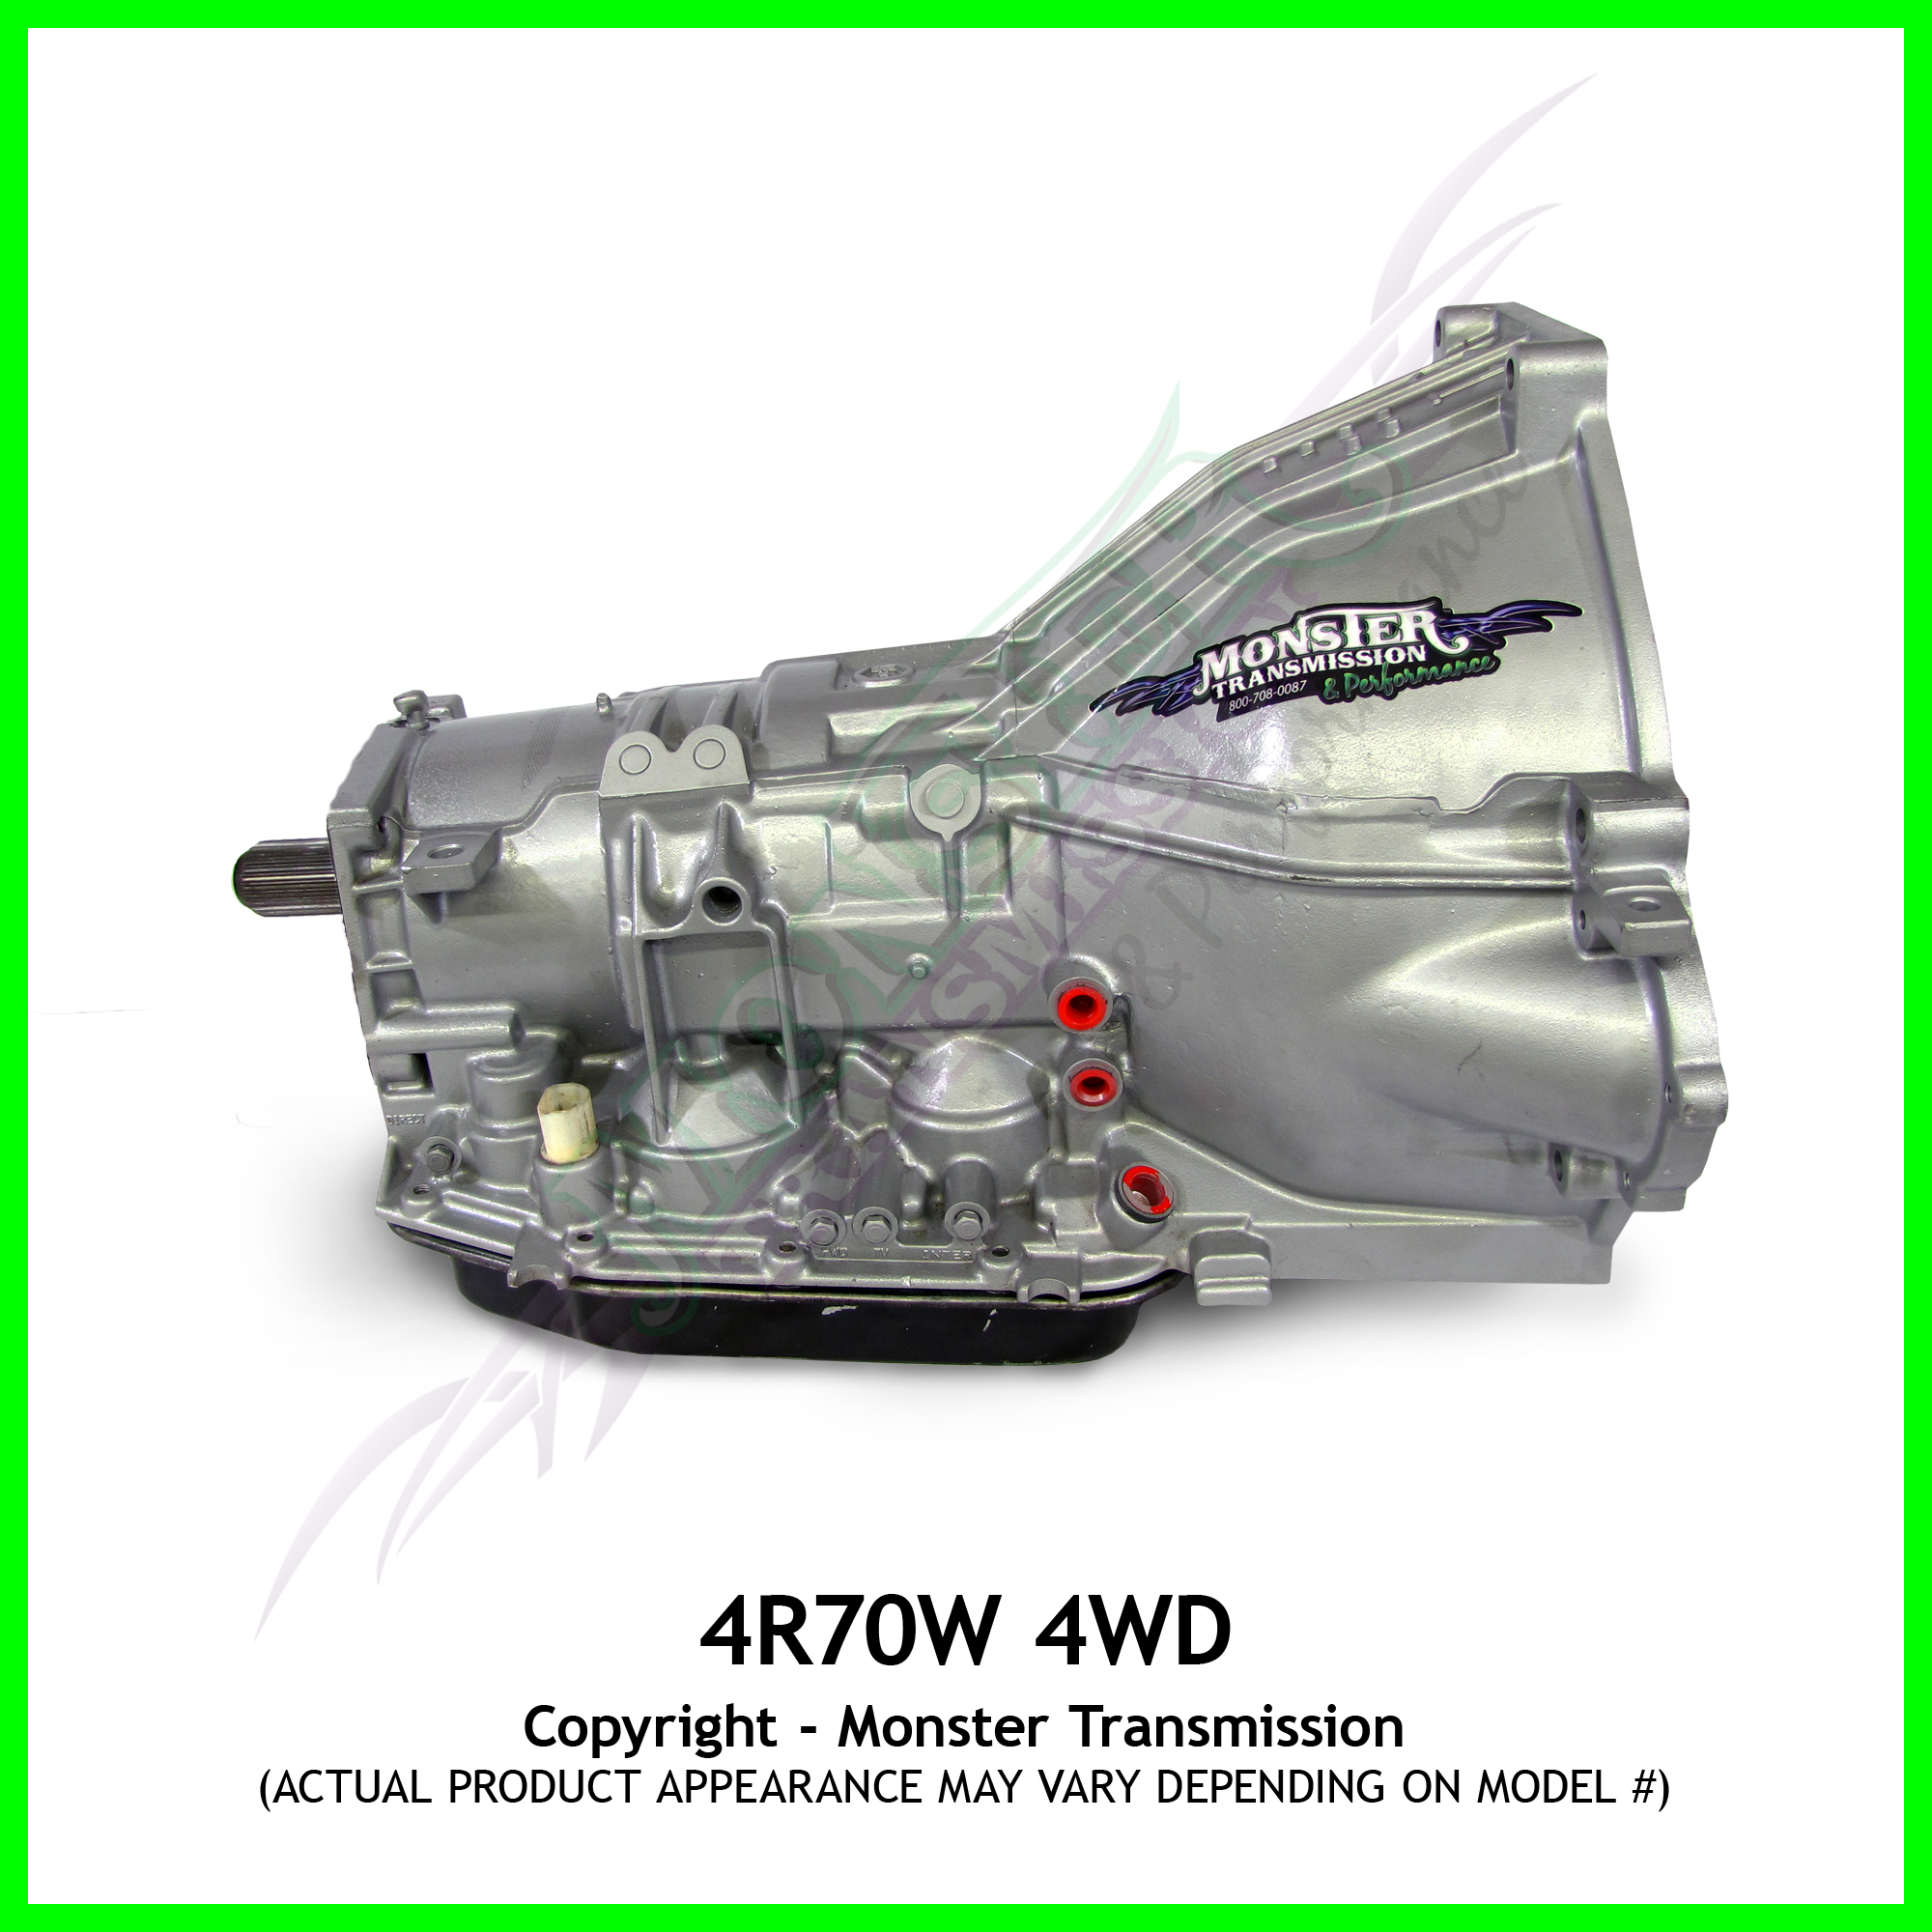 hight resolution of 4r70w transmission remanufactured heavy duty performance transmission 4x4